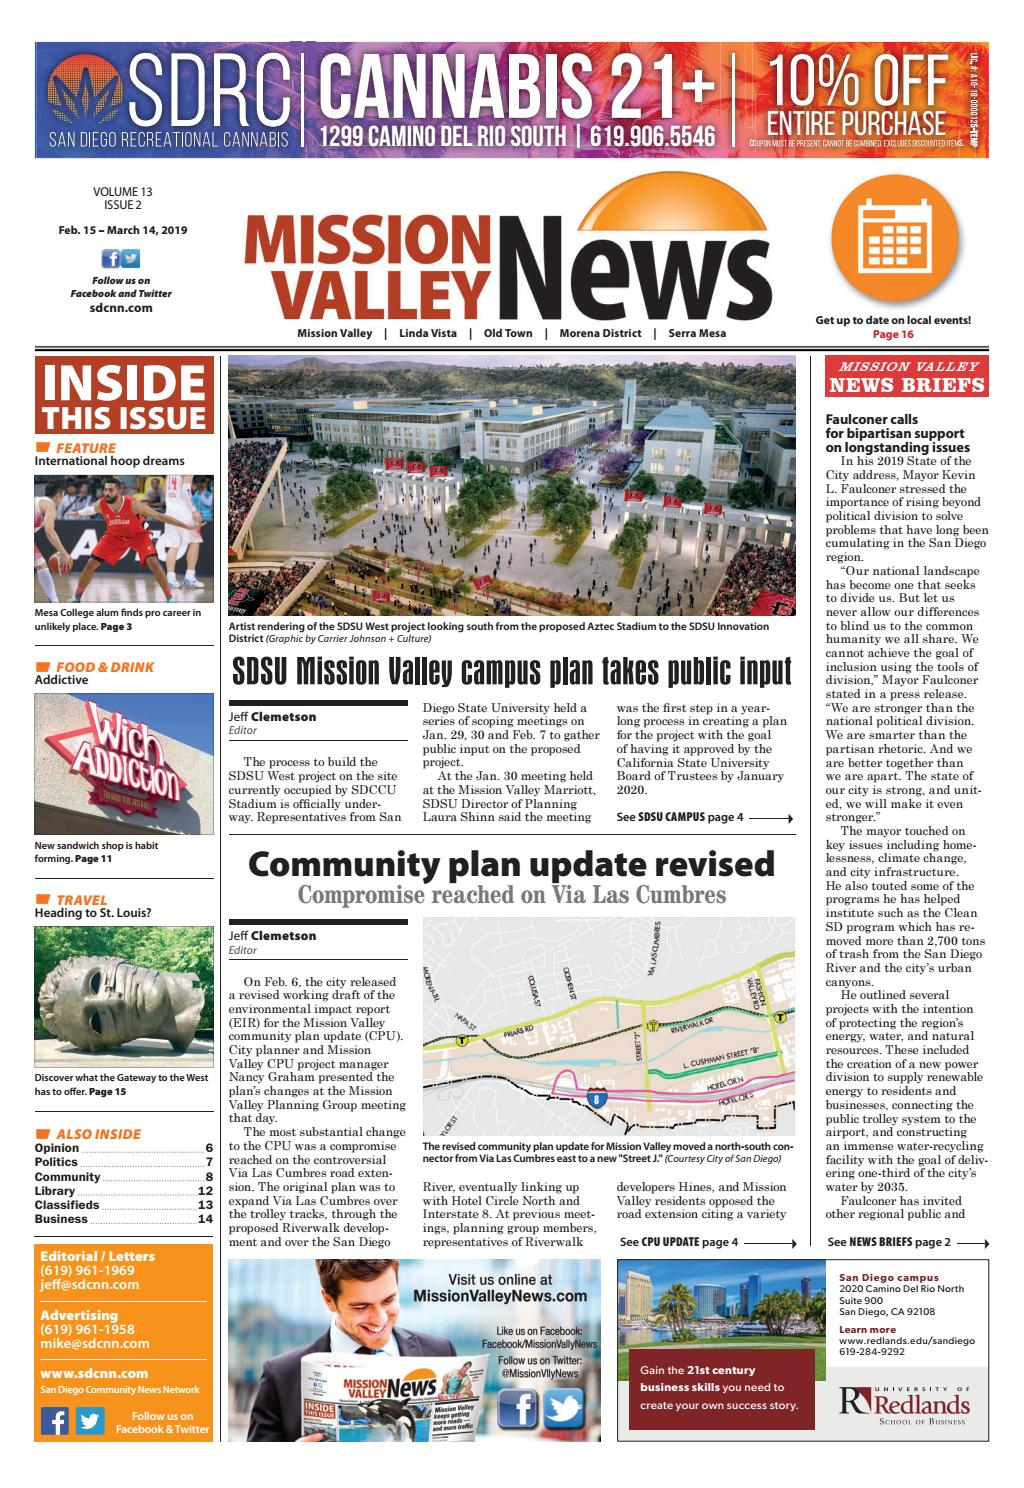 sneakers for cheap 6bd42 45d9c Mission Valley News, Vol. 13, Issue 2 by SDCNN - issuu